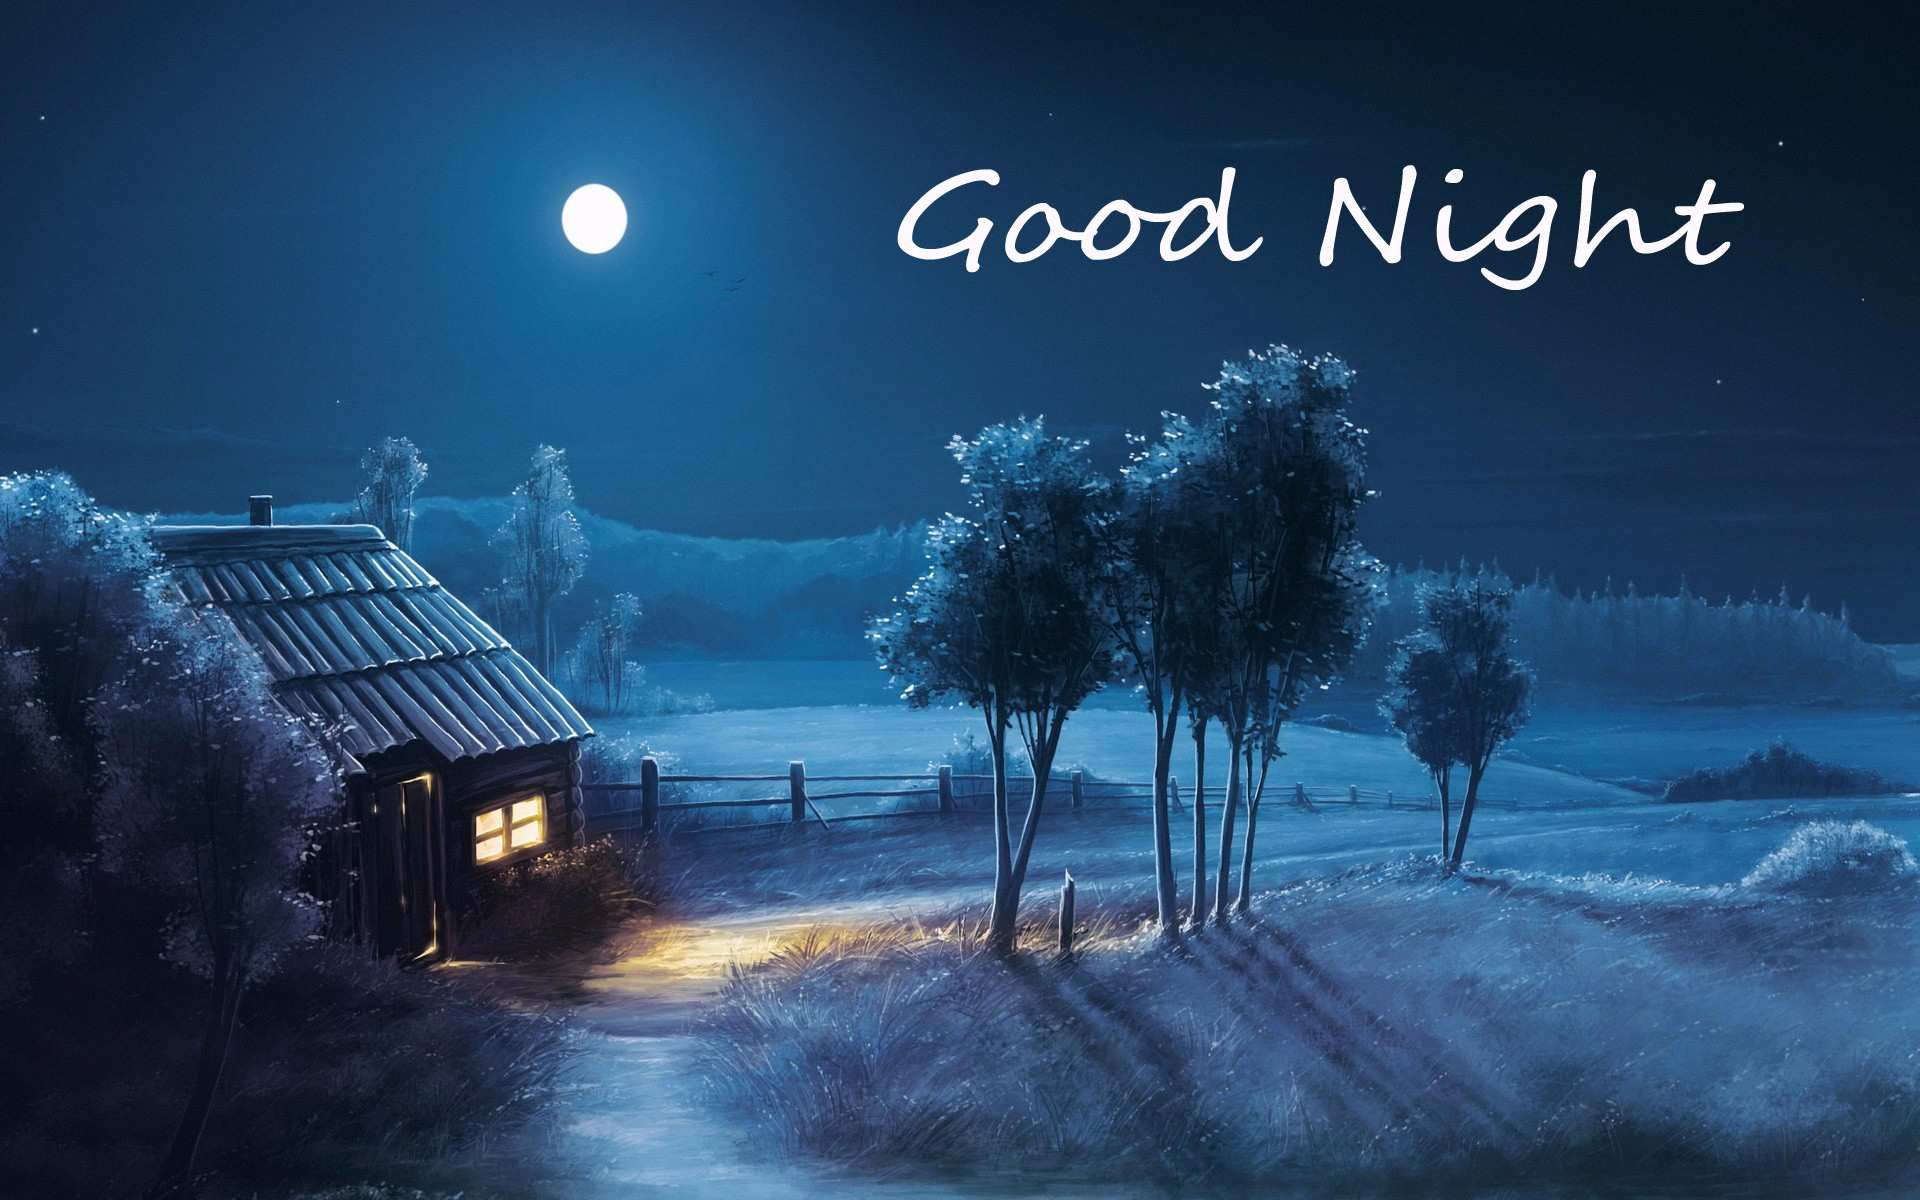 Best Hd Good Night Images Wallpapers Most Beautiful Good Night Pictures Jpg 1920 1200 Night Scenery Good Night Wallpaper Good Night Images Hd